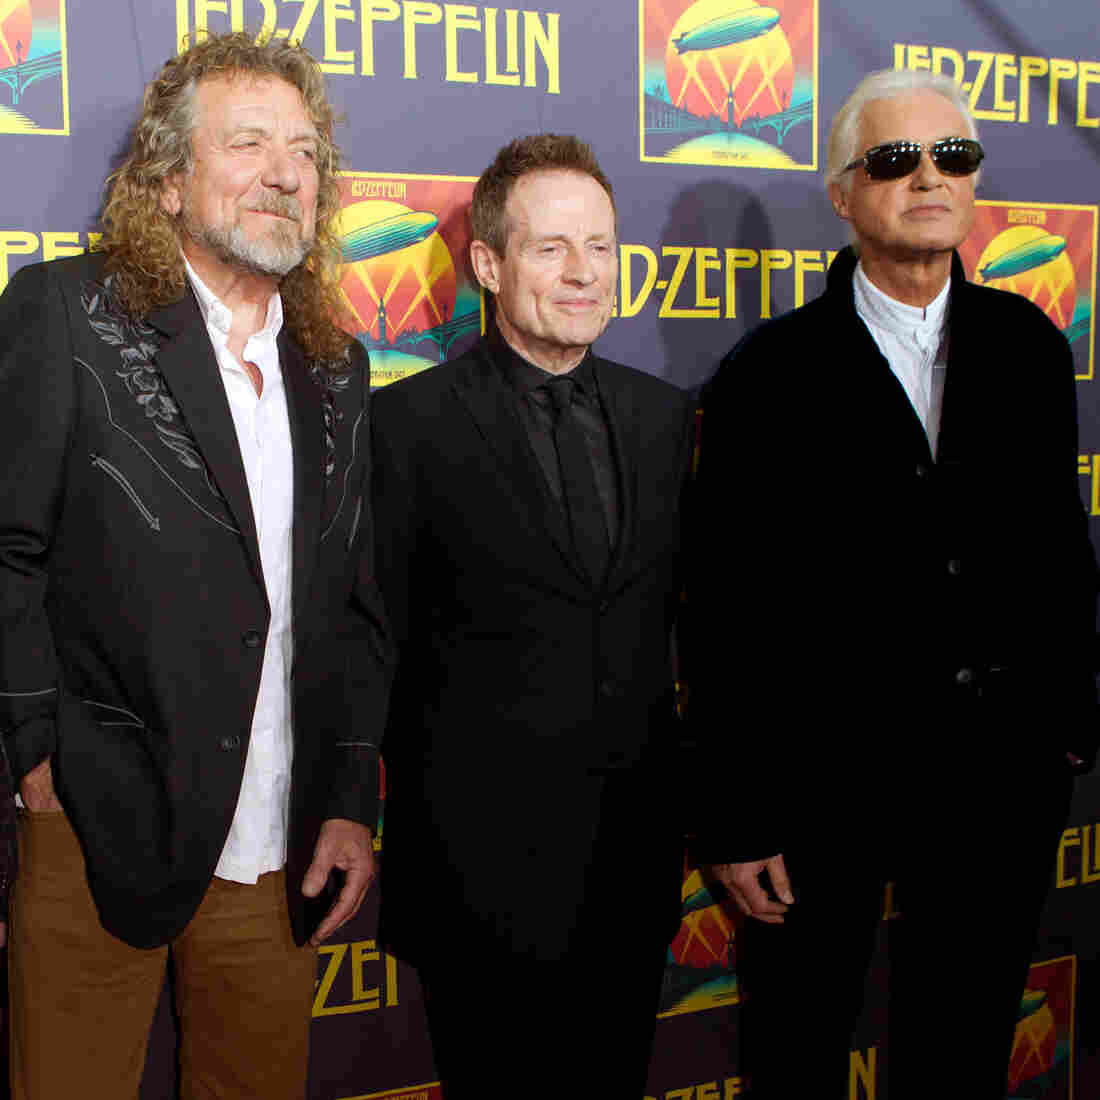 Did Led Zeppelin Plagiarize 'Stairway'? A Pa. Judge Will Decide